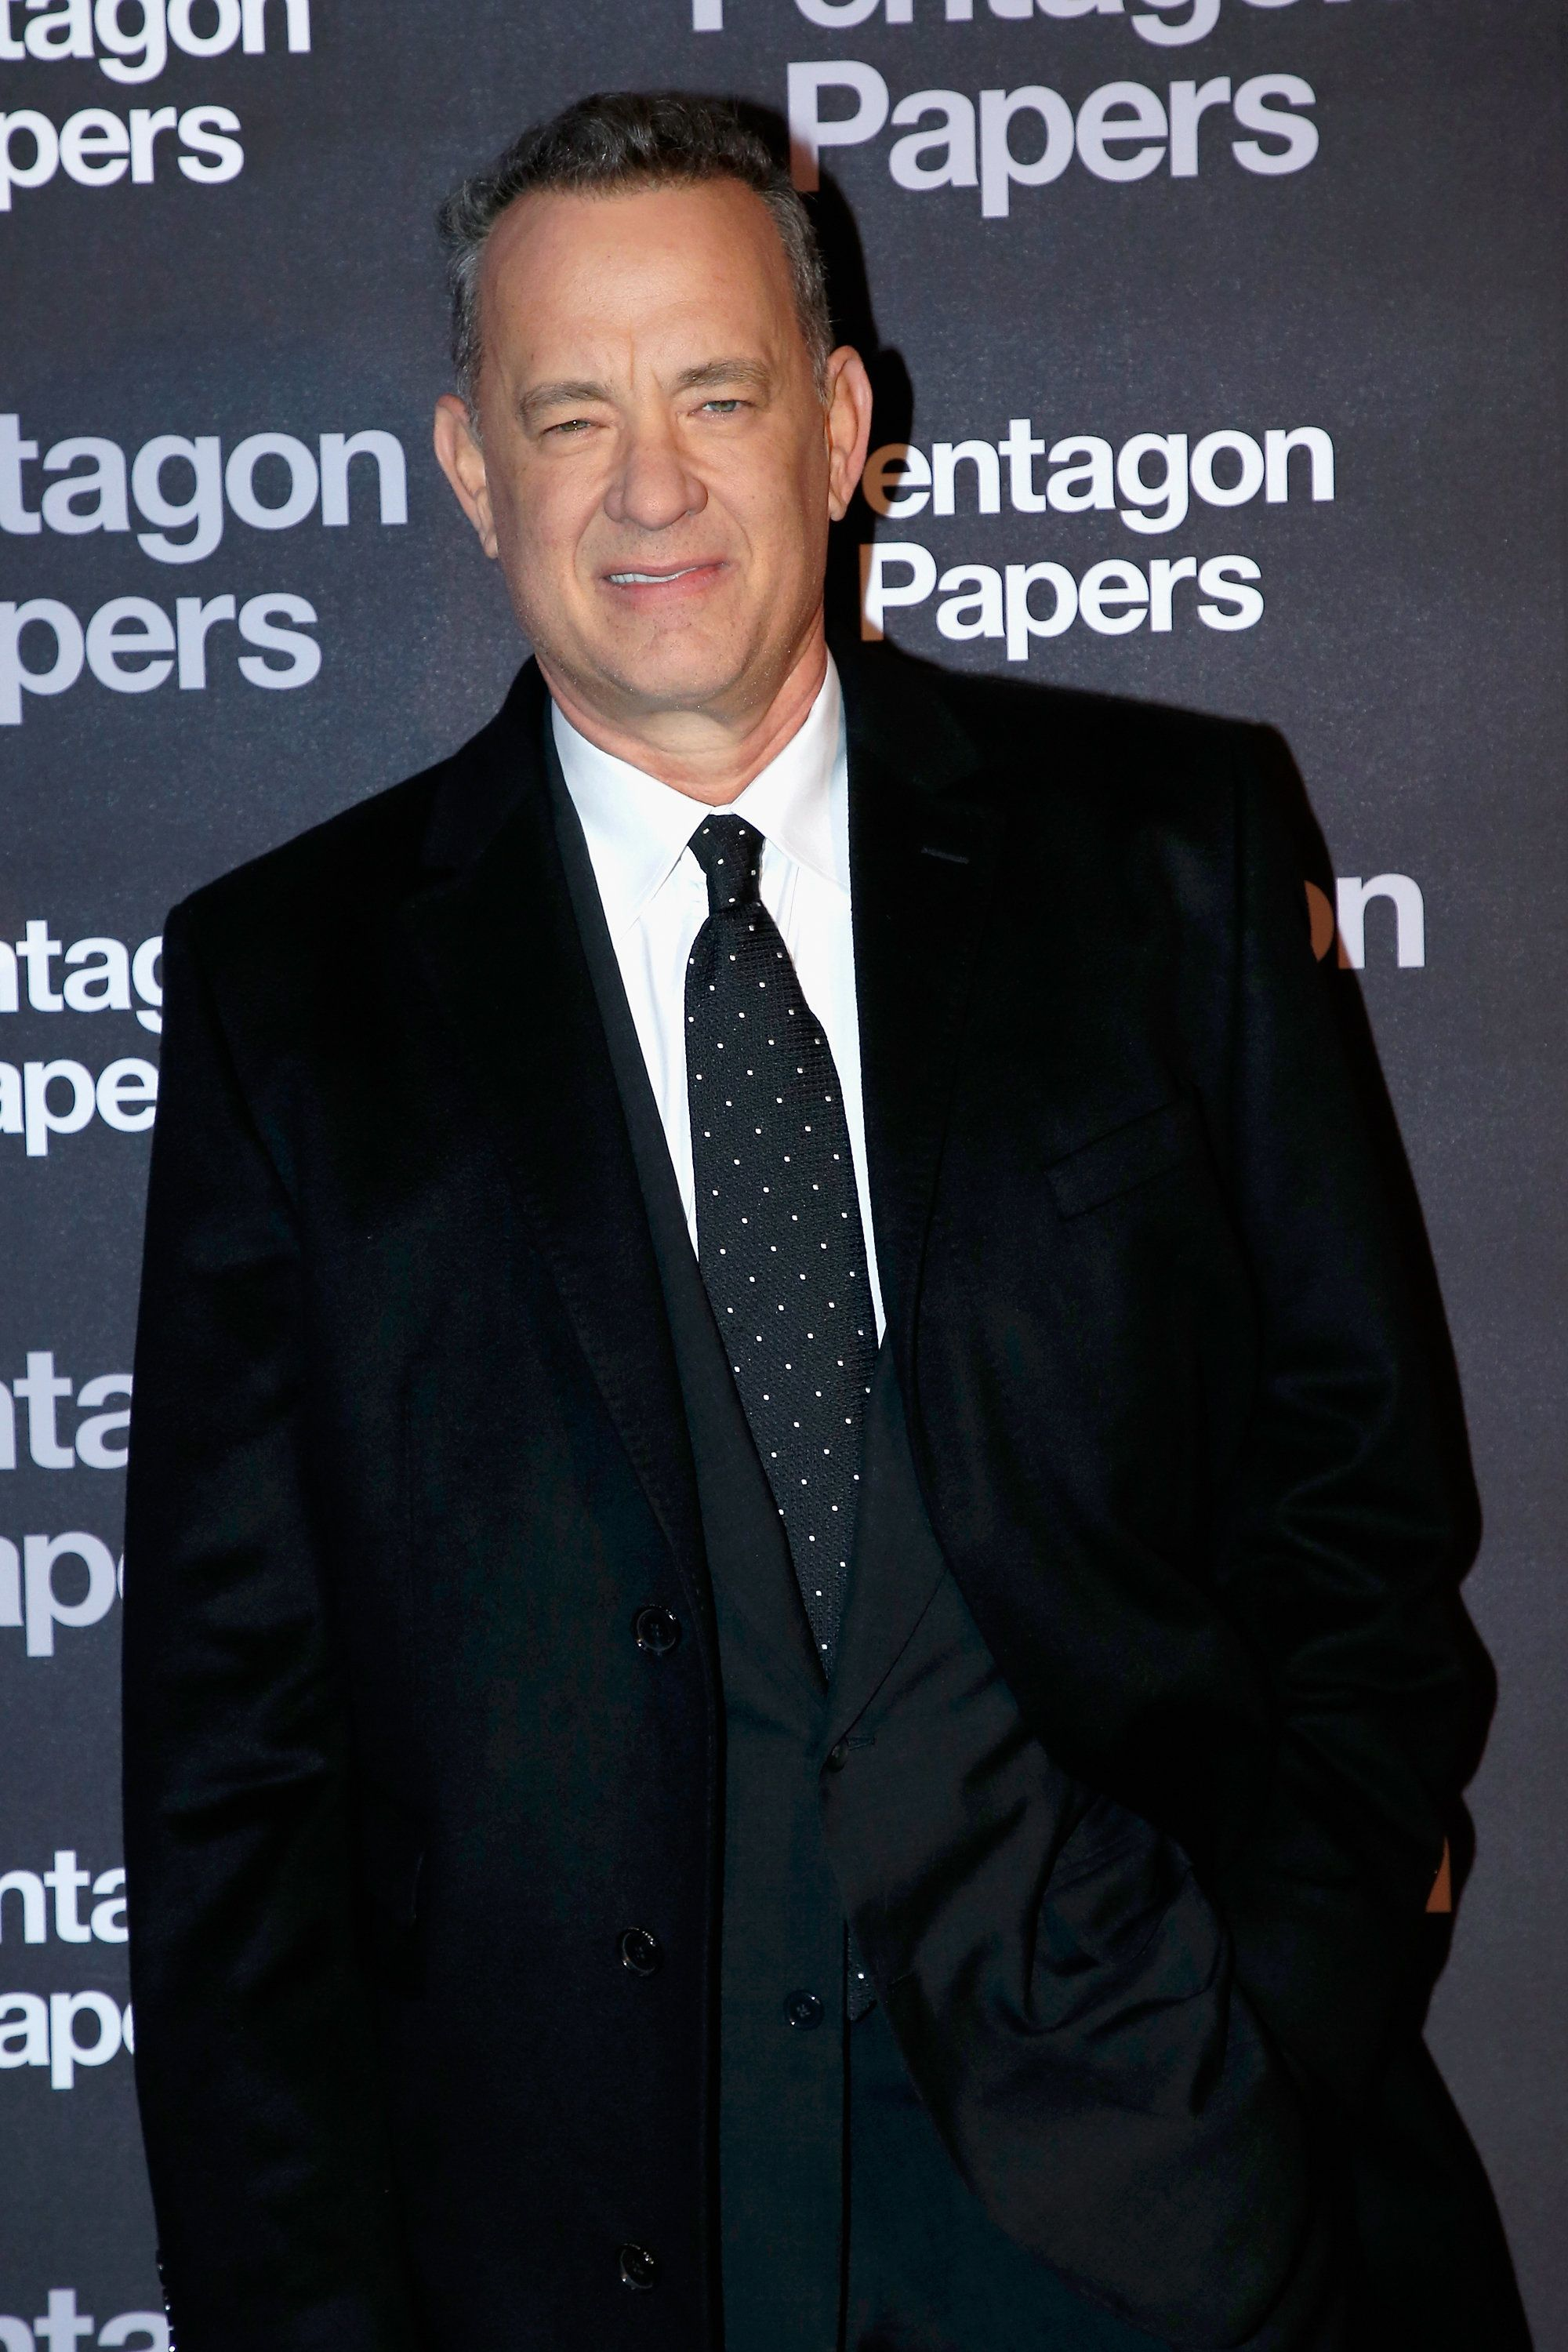 PARIS, FRANCE - JANUARY 13:  American Actor Tom Hanks attends the 'Pentagon Papers' Paris Premiere at Cinema UGC Normandie on January 13, 2018 in Paris, France.  (Photo by Bertrand Rindoff Petroff/Getty Images)